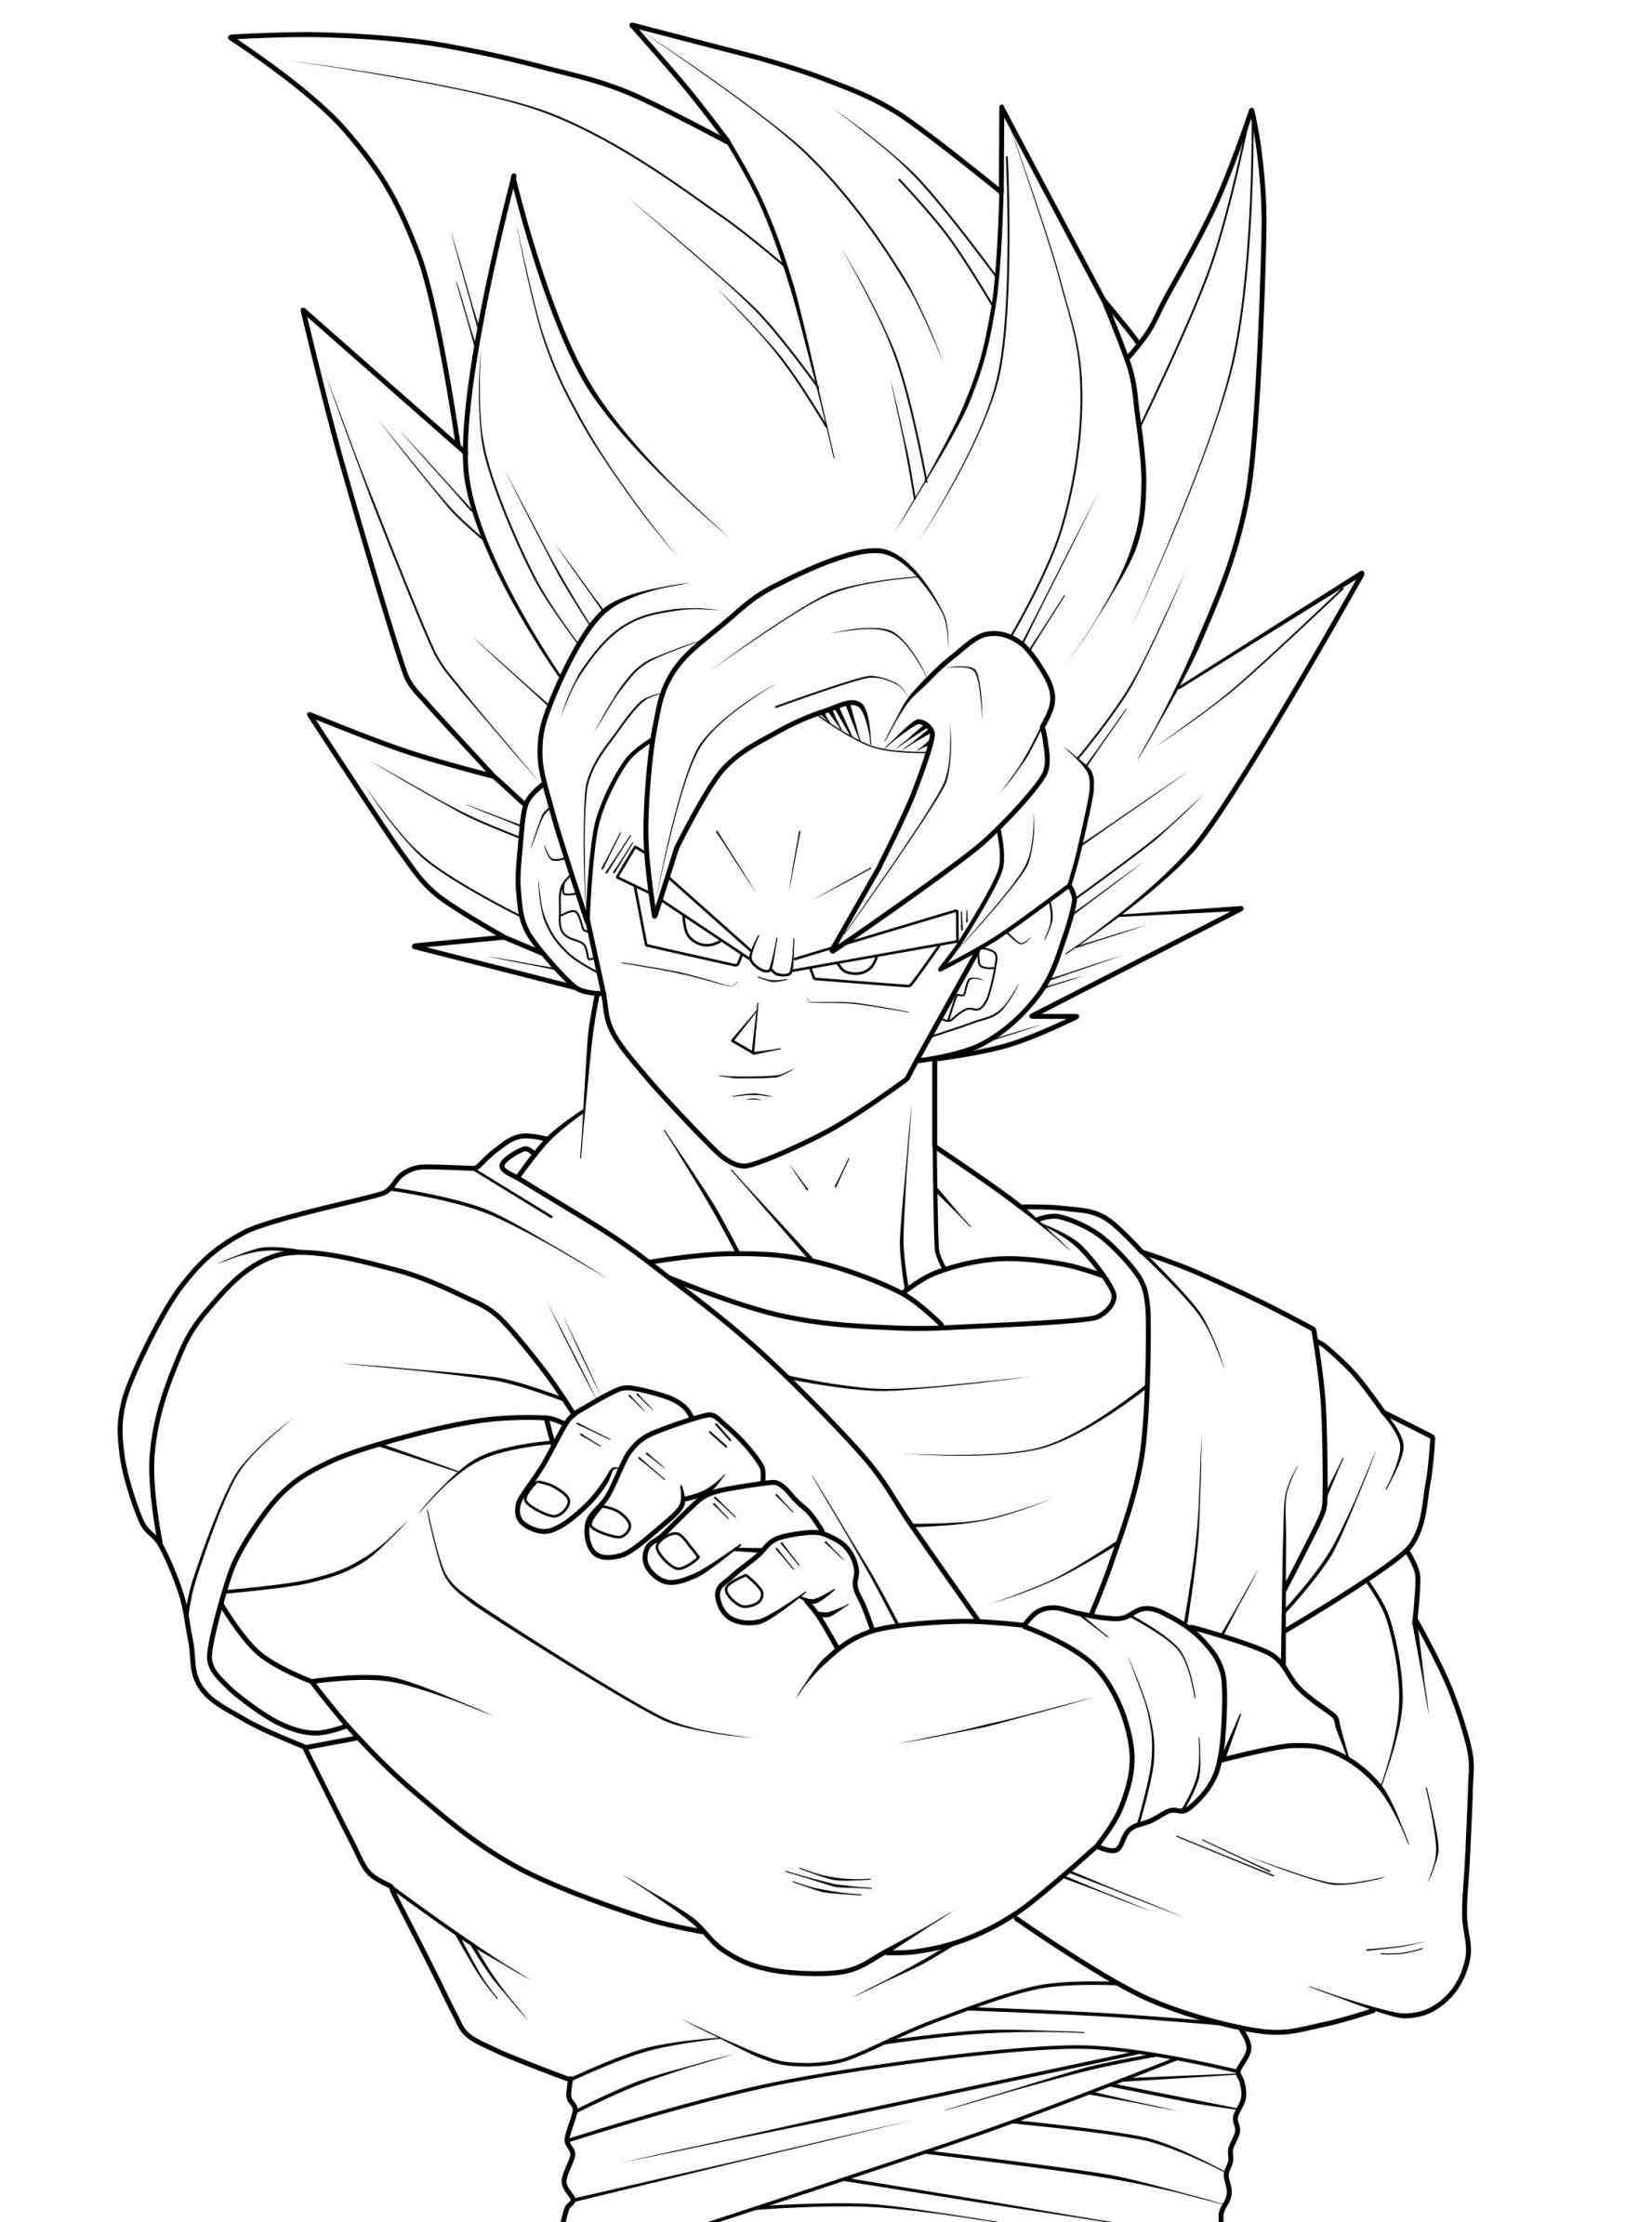 dragon ball z goku super saiyan 4 coloring pages - anime pictures